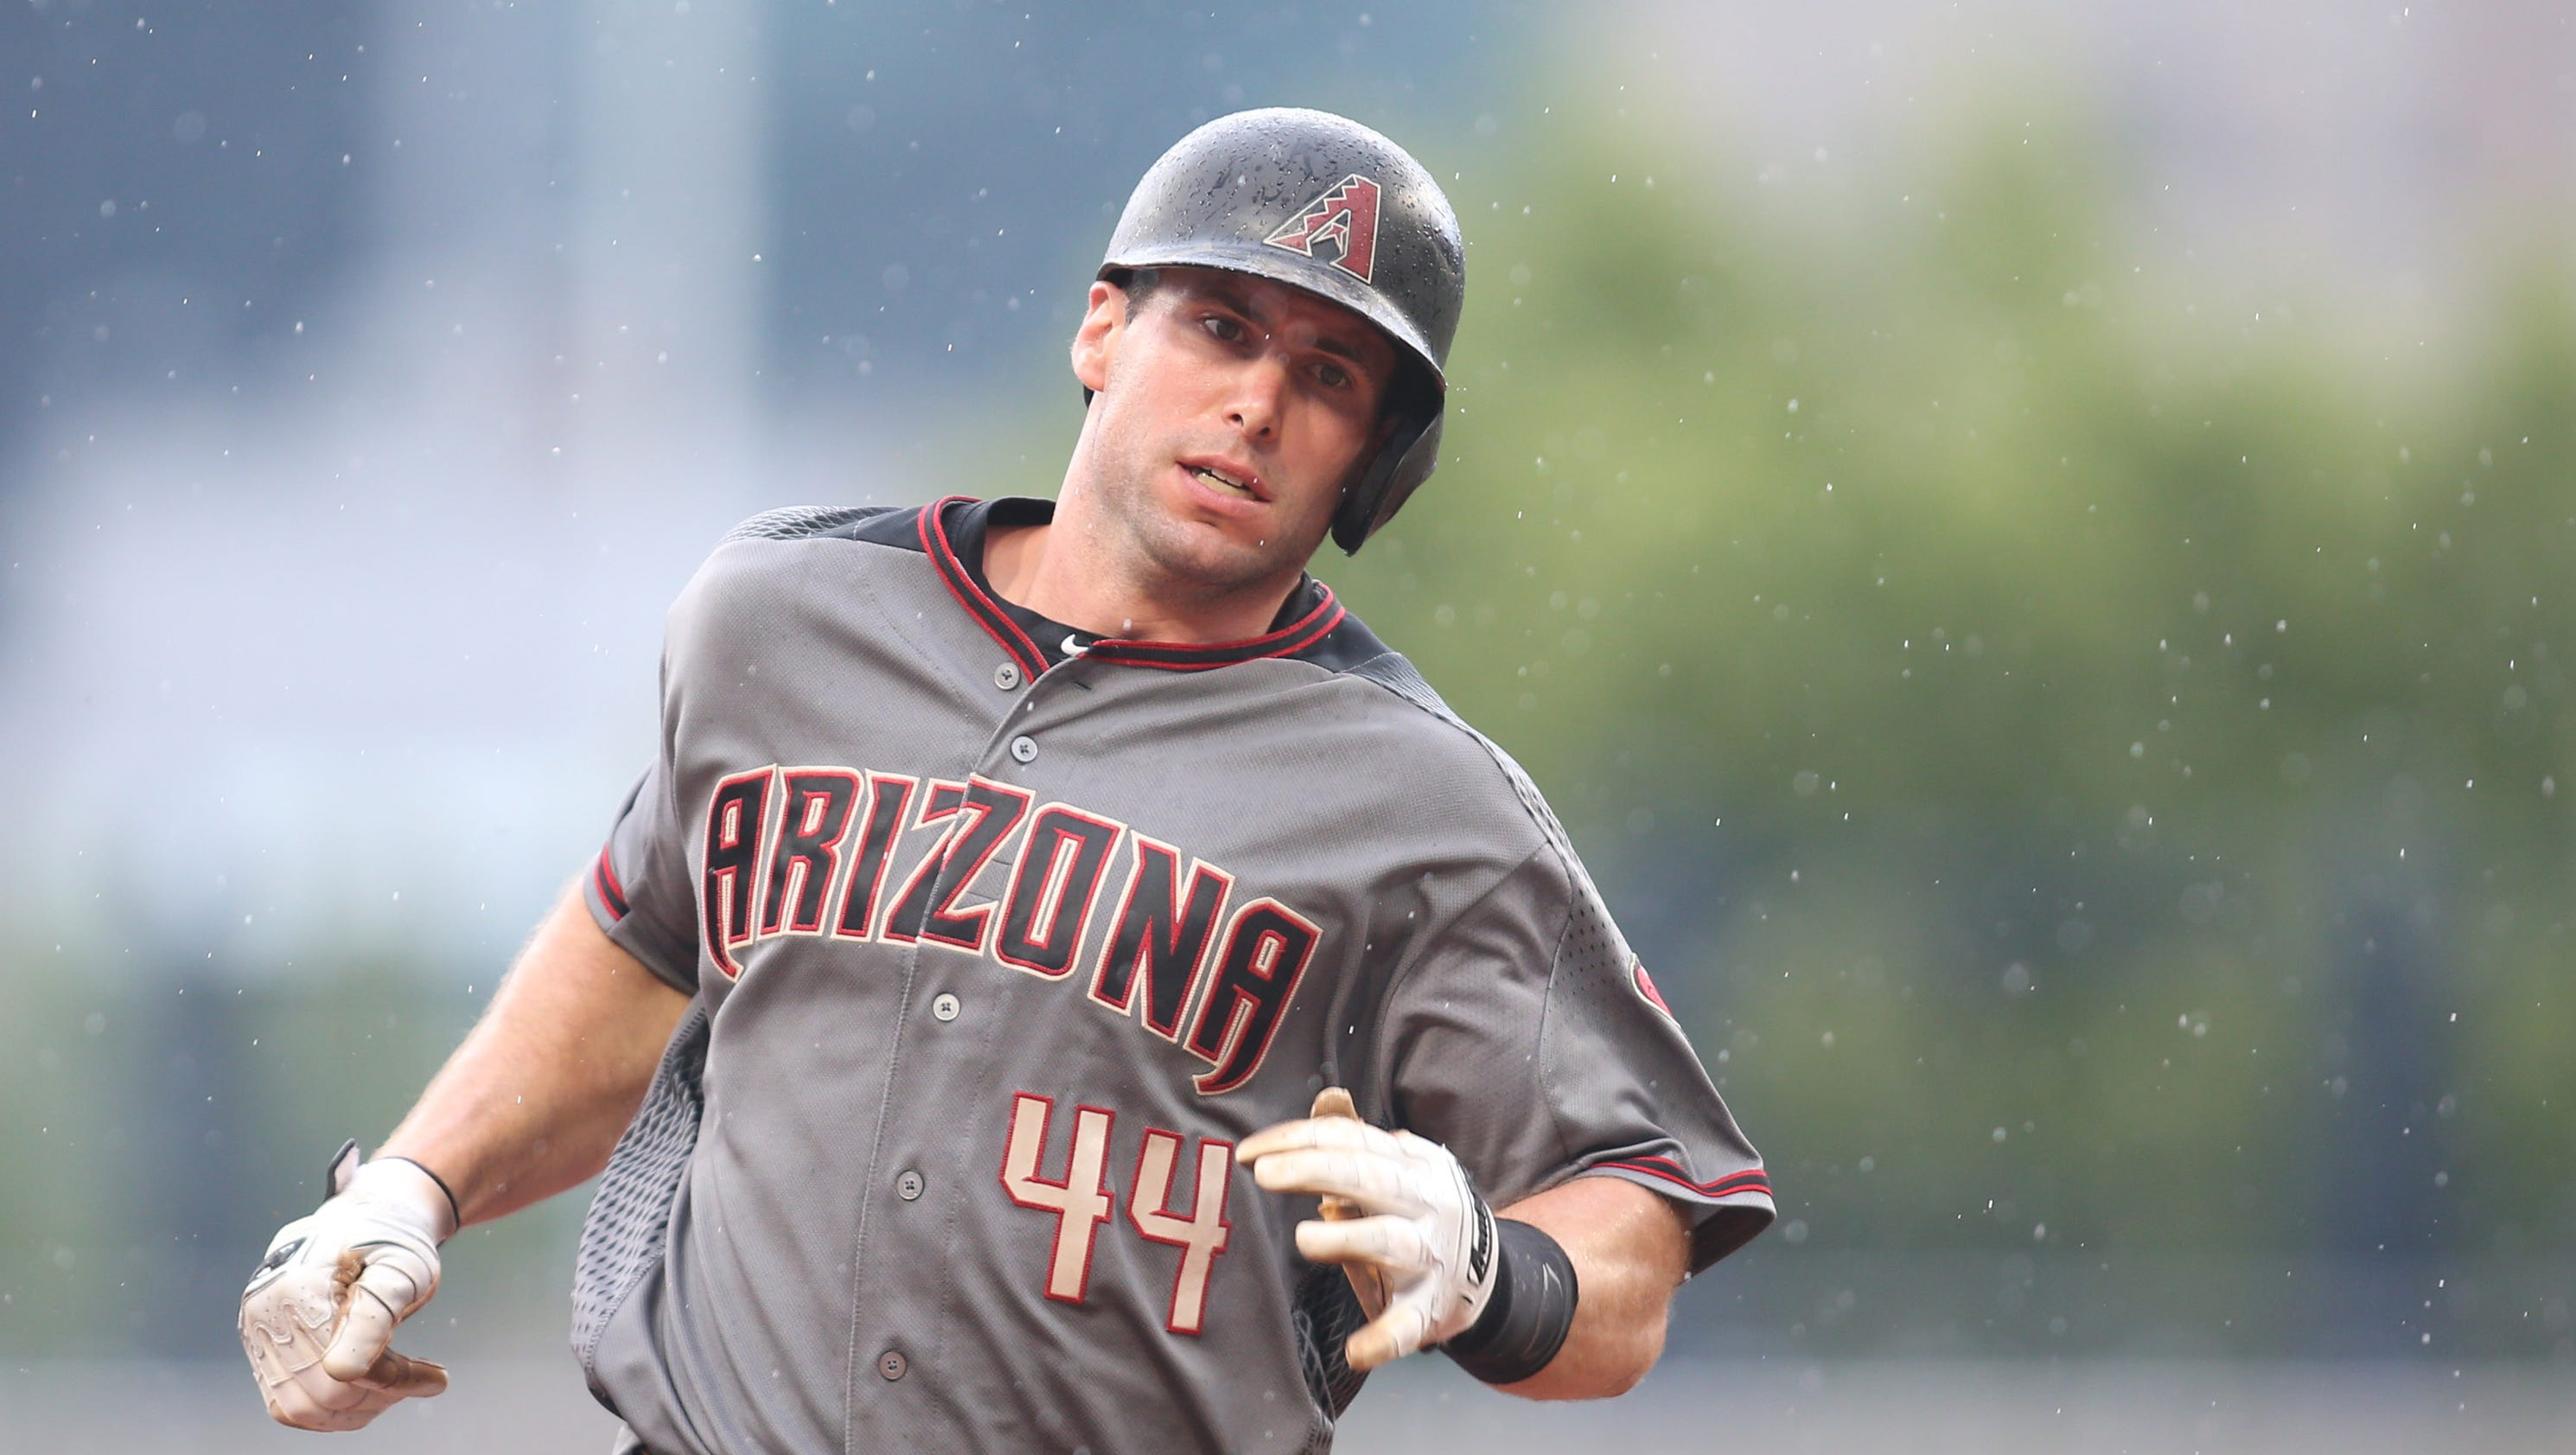 636655316691437834-paul-goldschmidt-mlb-all-star